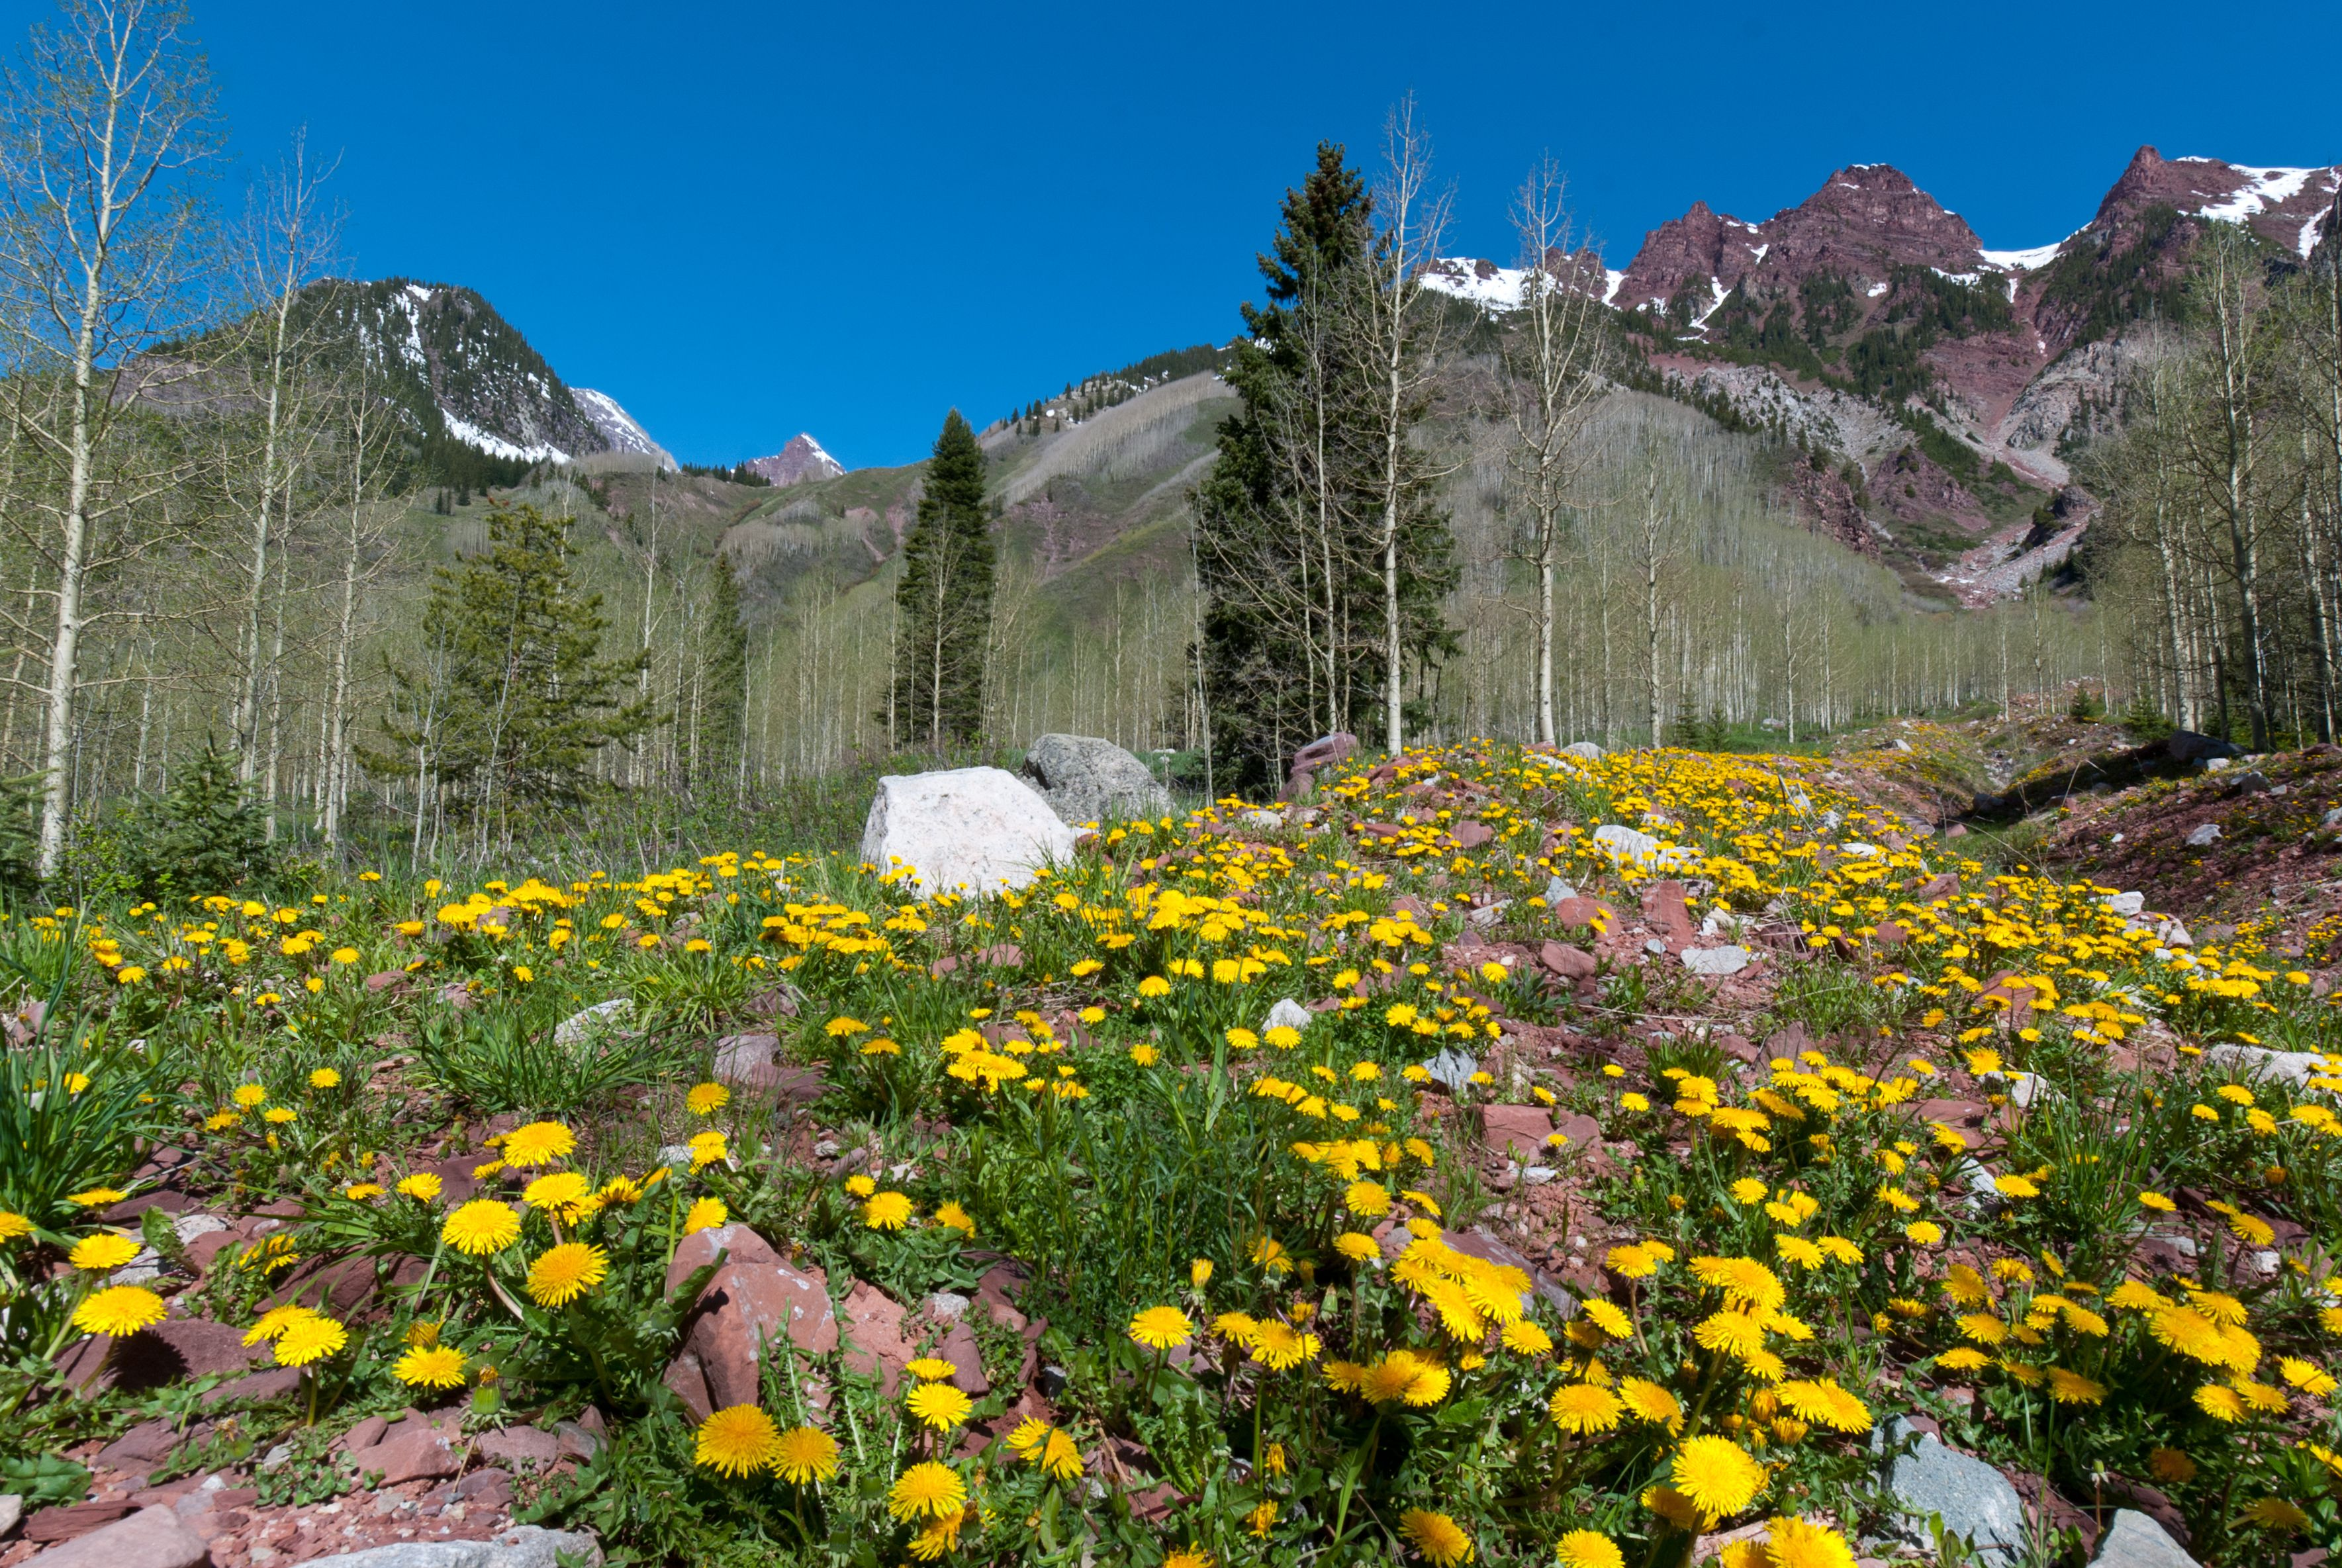 Spring Rocky Mountain Landscape A Photograph By Lynn Cyrus Cascade Colors Believe It Or Not Given My Mul Mountain Landscape Colorado Landscape Mountains